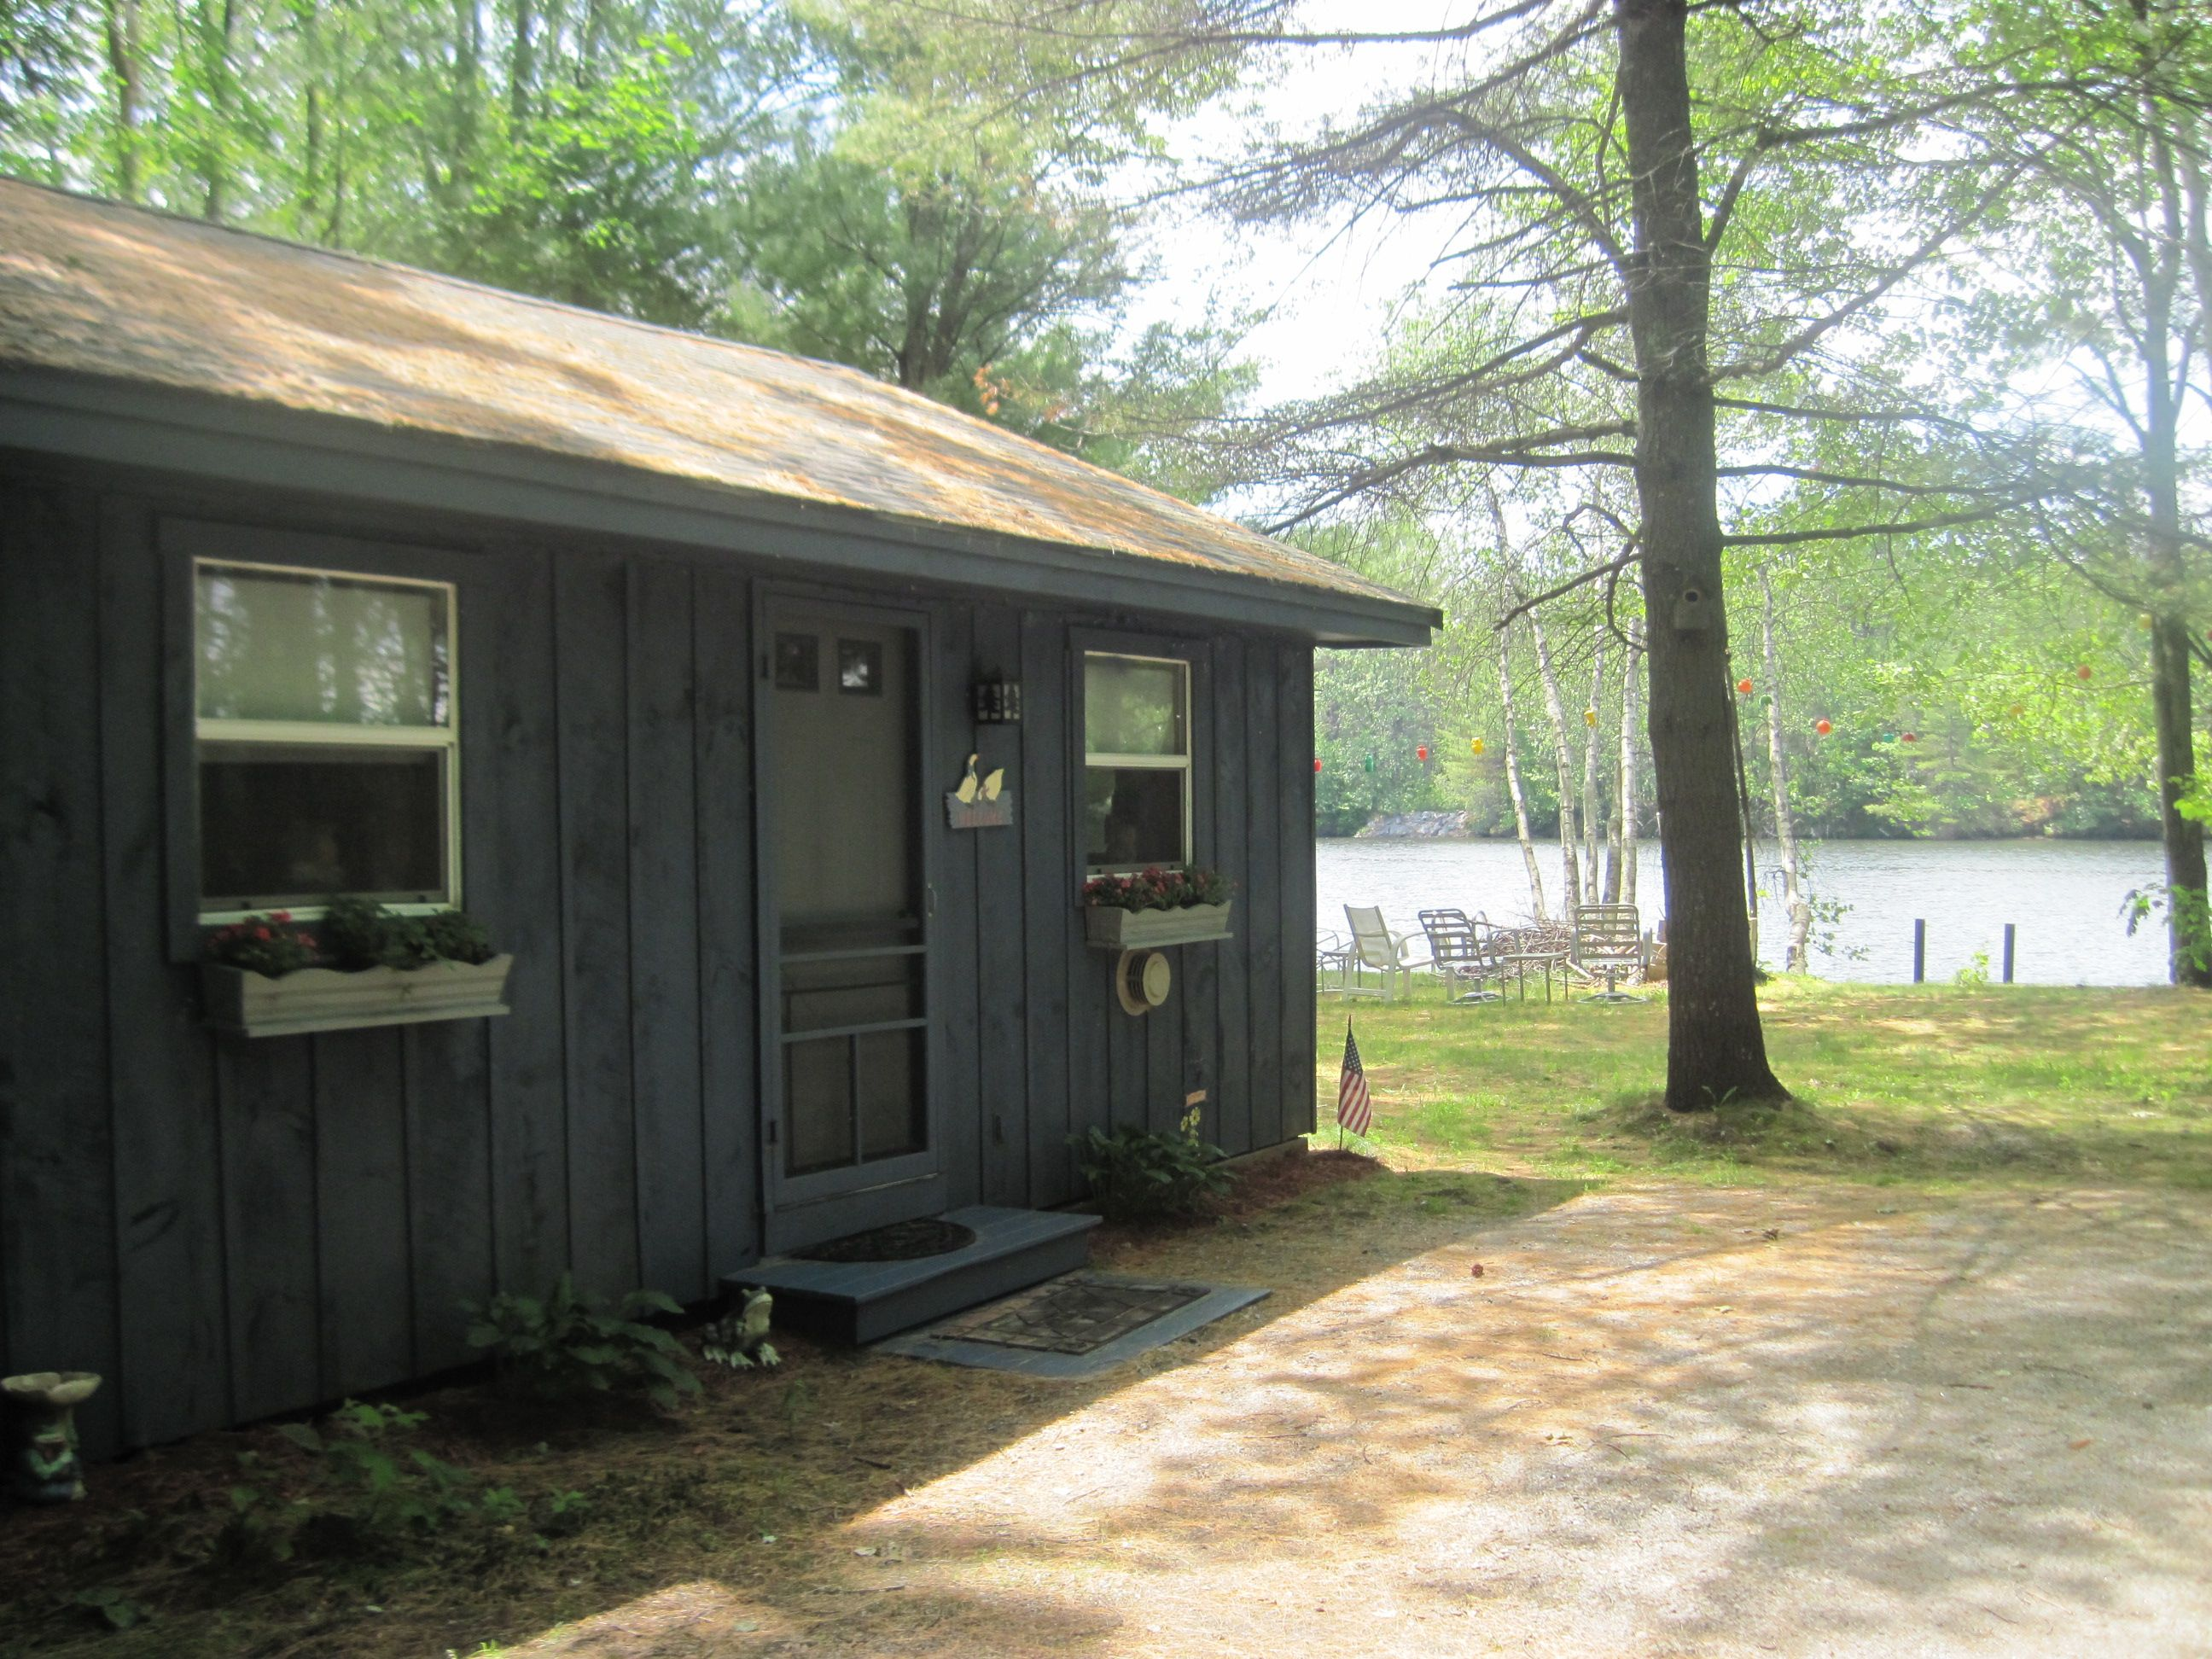 cottage newslide campgrounds jersey rentals cabins pine resort haven nh camping cabin new shore